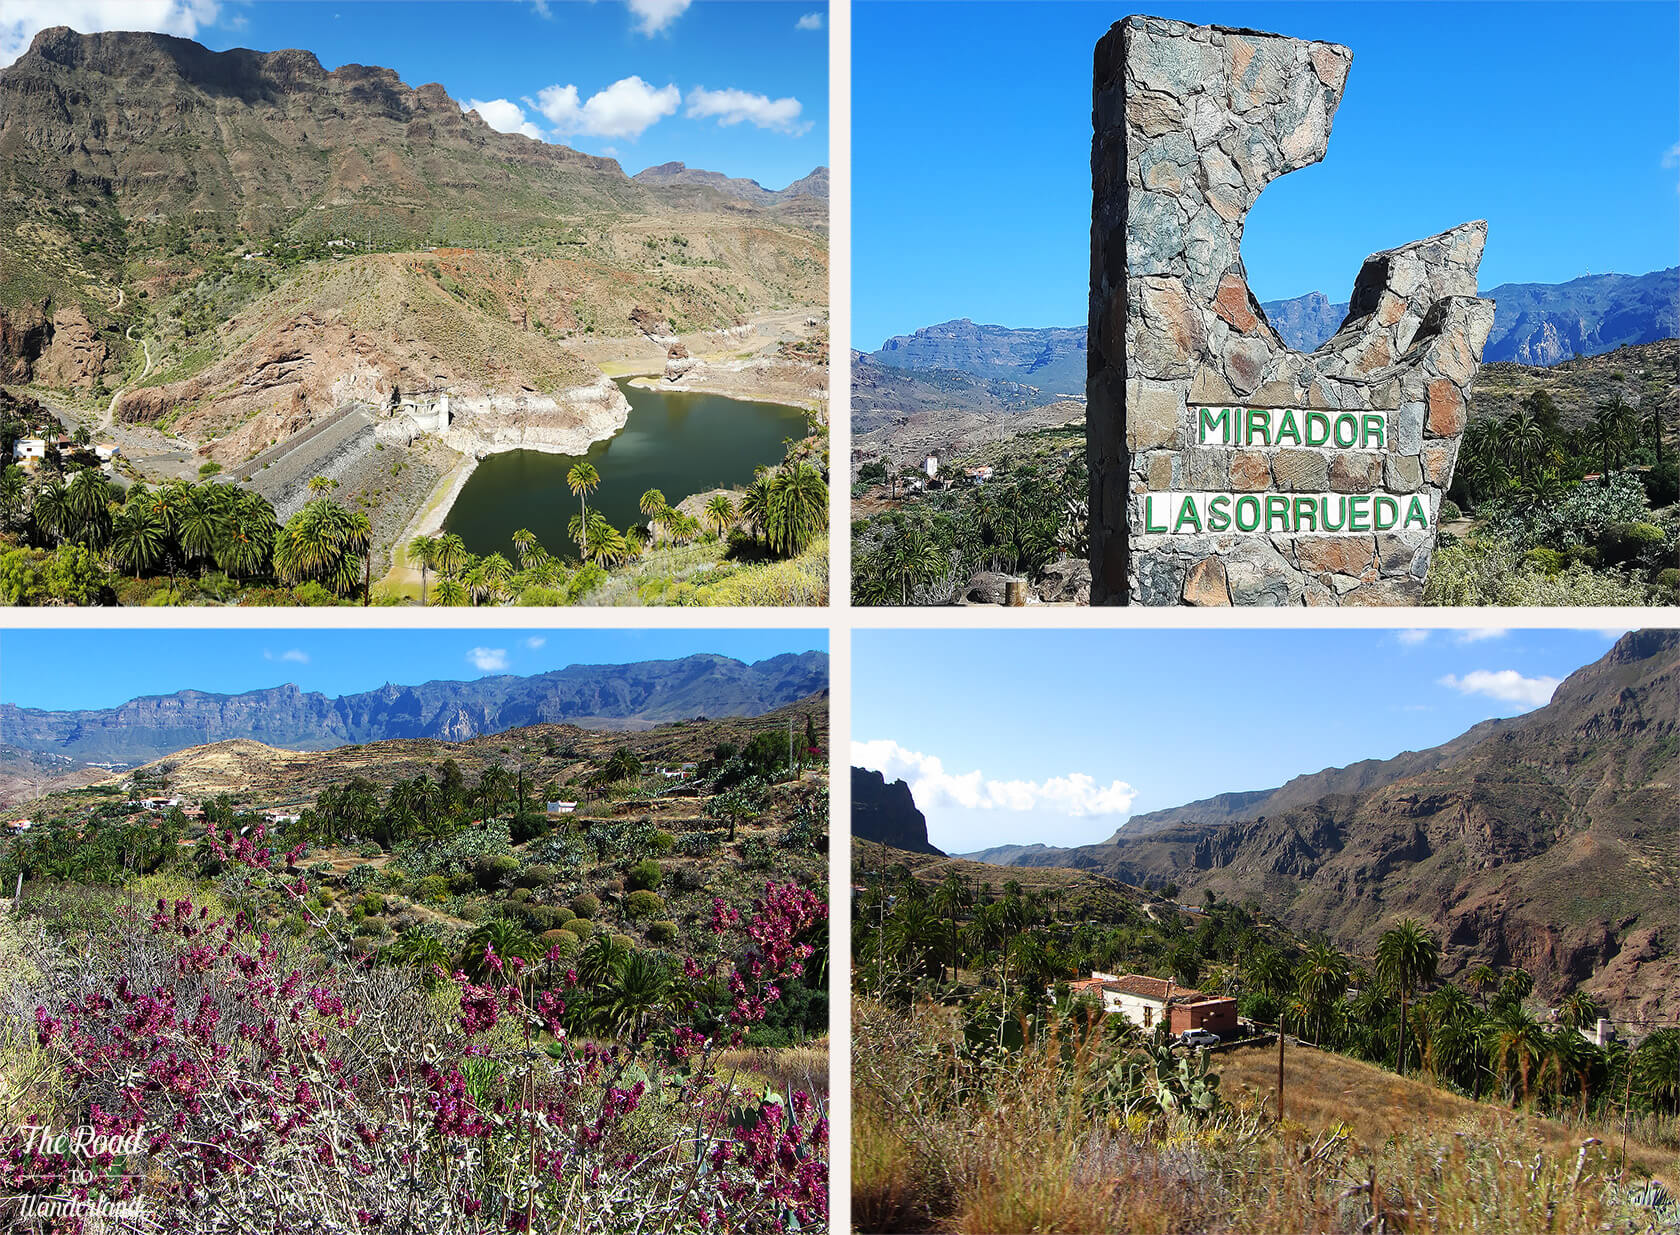 Landscapes of Gran Canaria: The Mirador de la Sorrueda